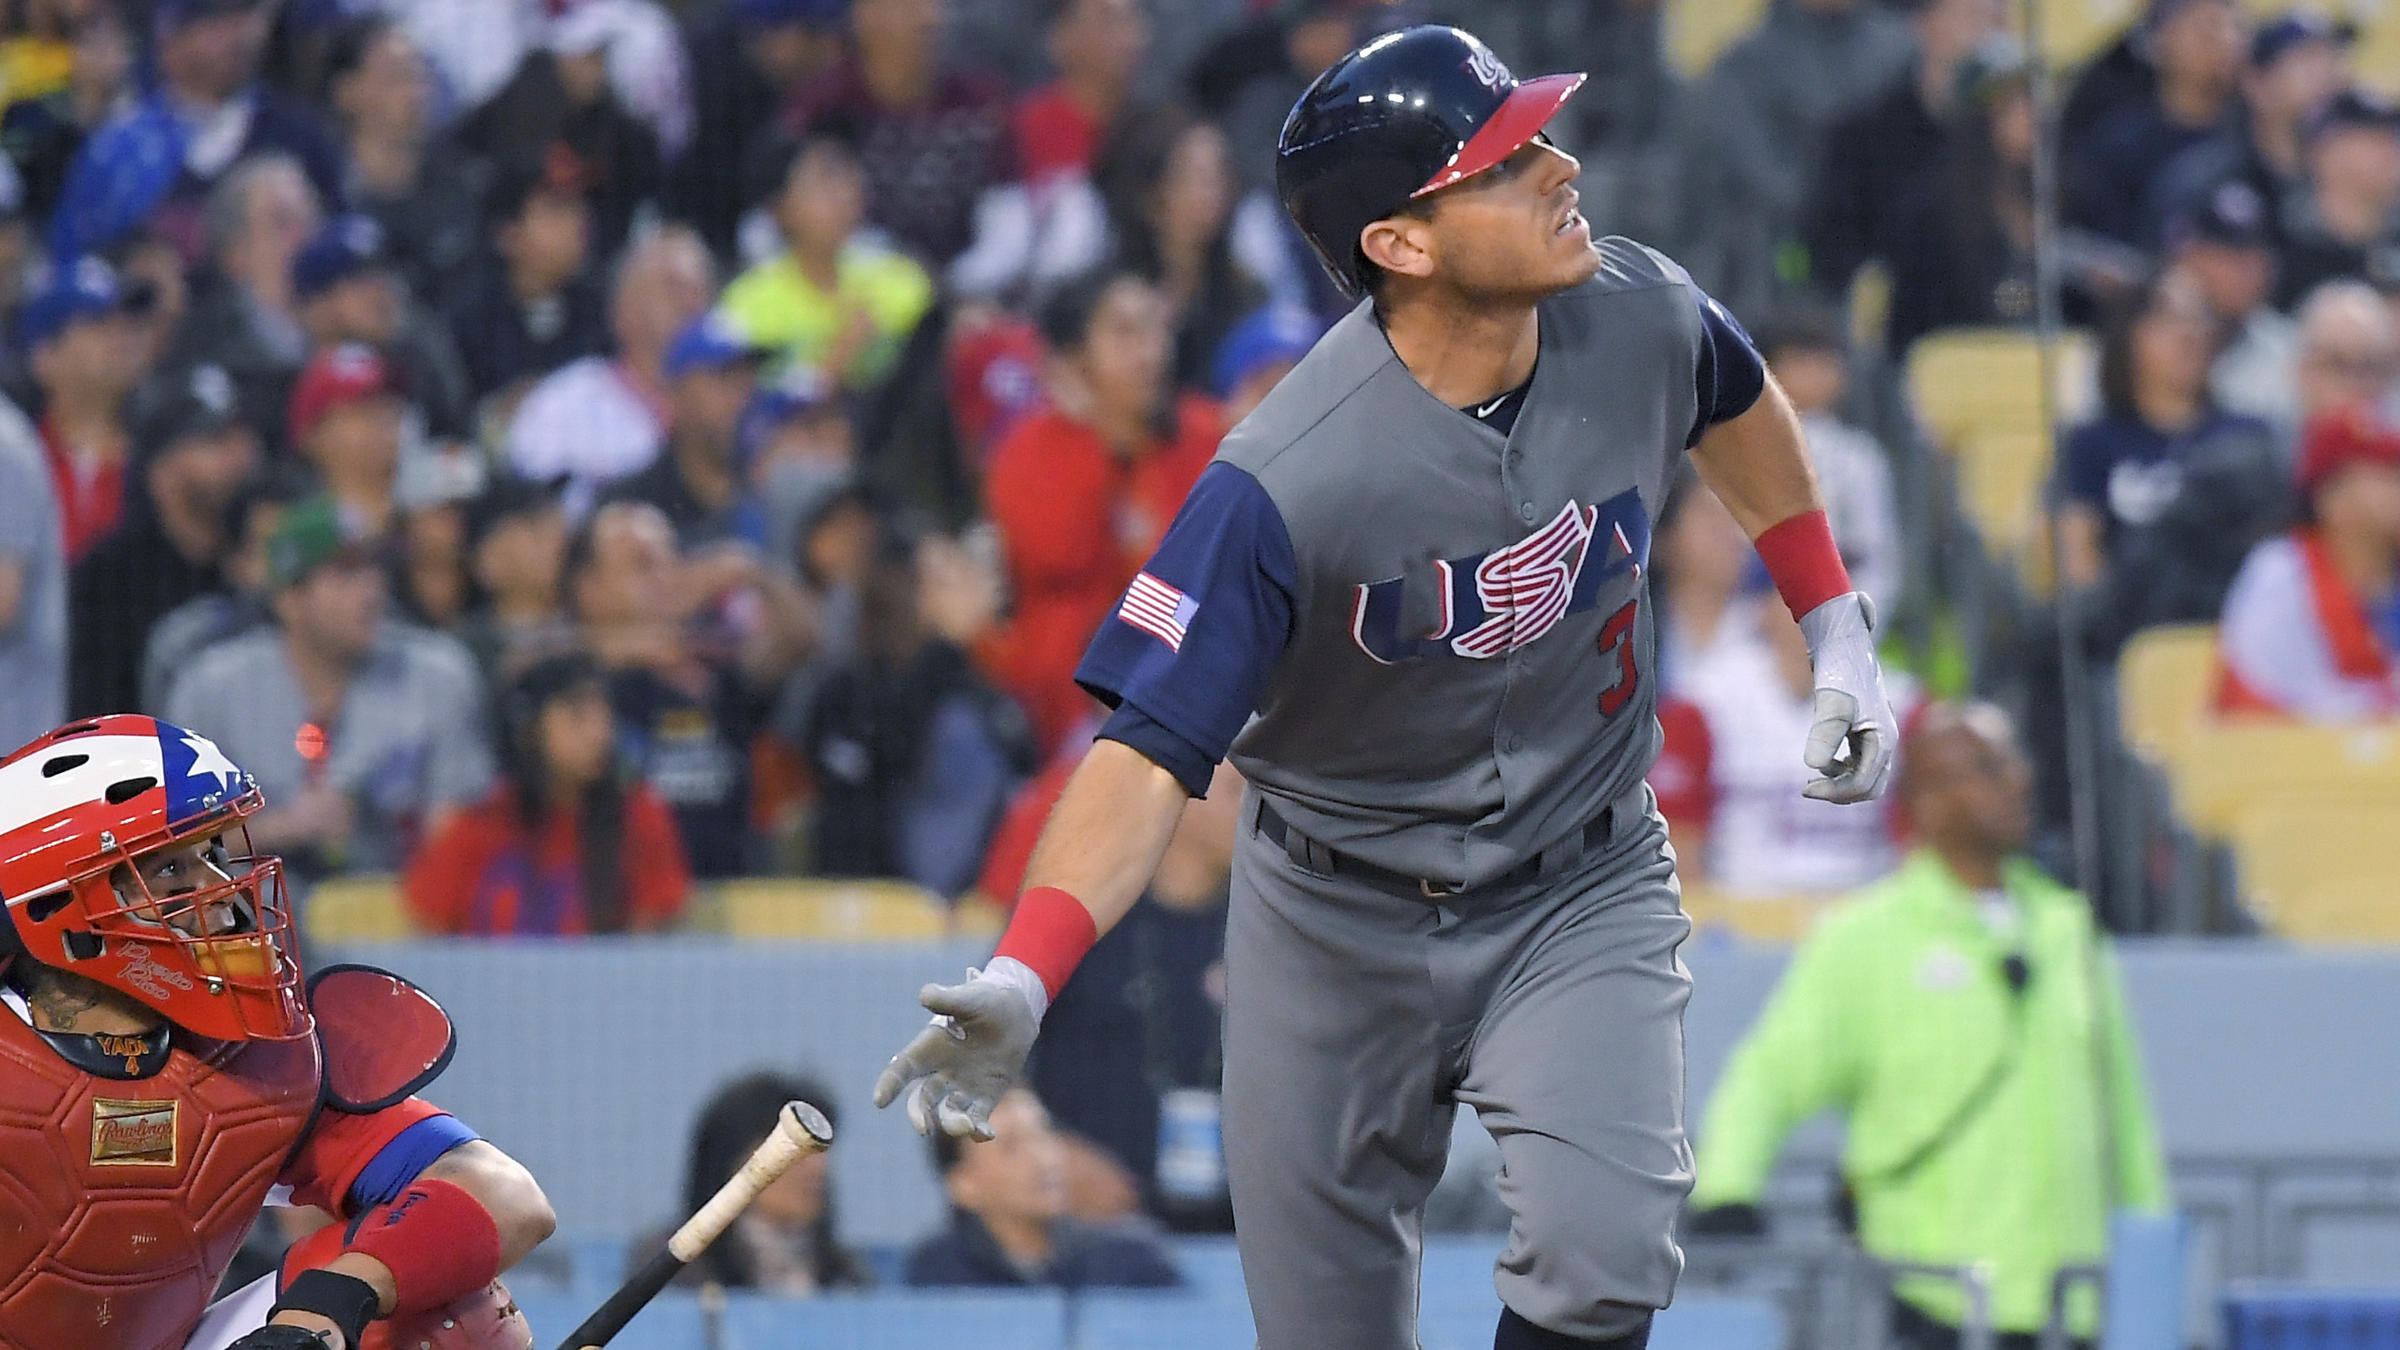 Team USA shuts out Puerto Rico to claim first WBC title